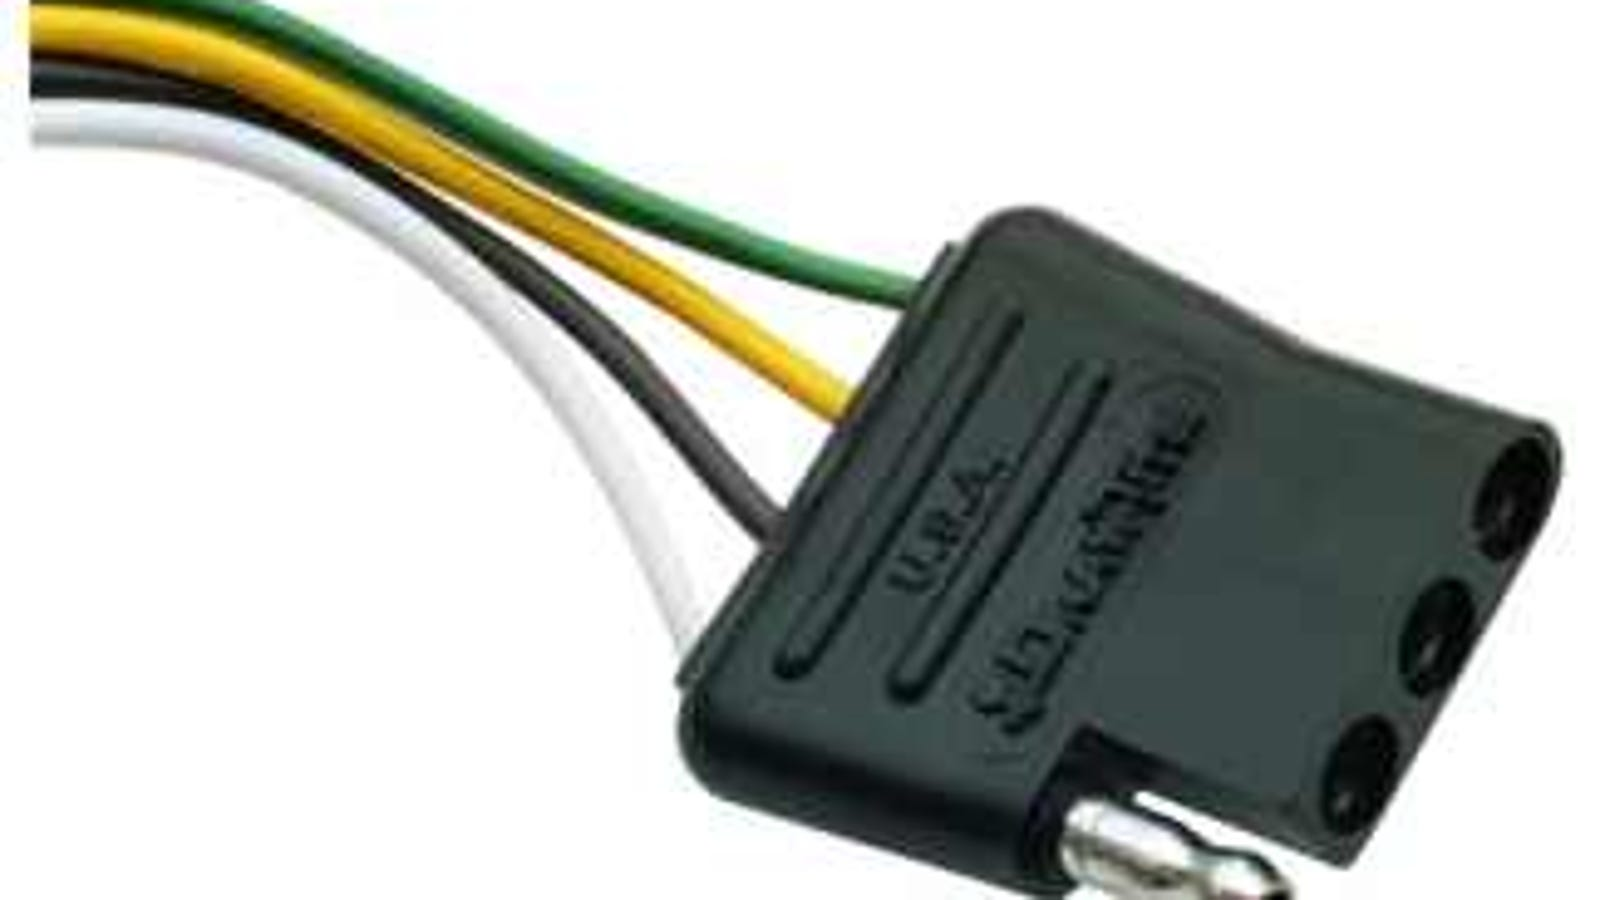 Enjoyable Protecting Trailer Wiring Harness Wiring Digital Resources Indicompassionincorg